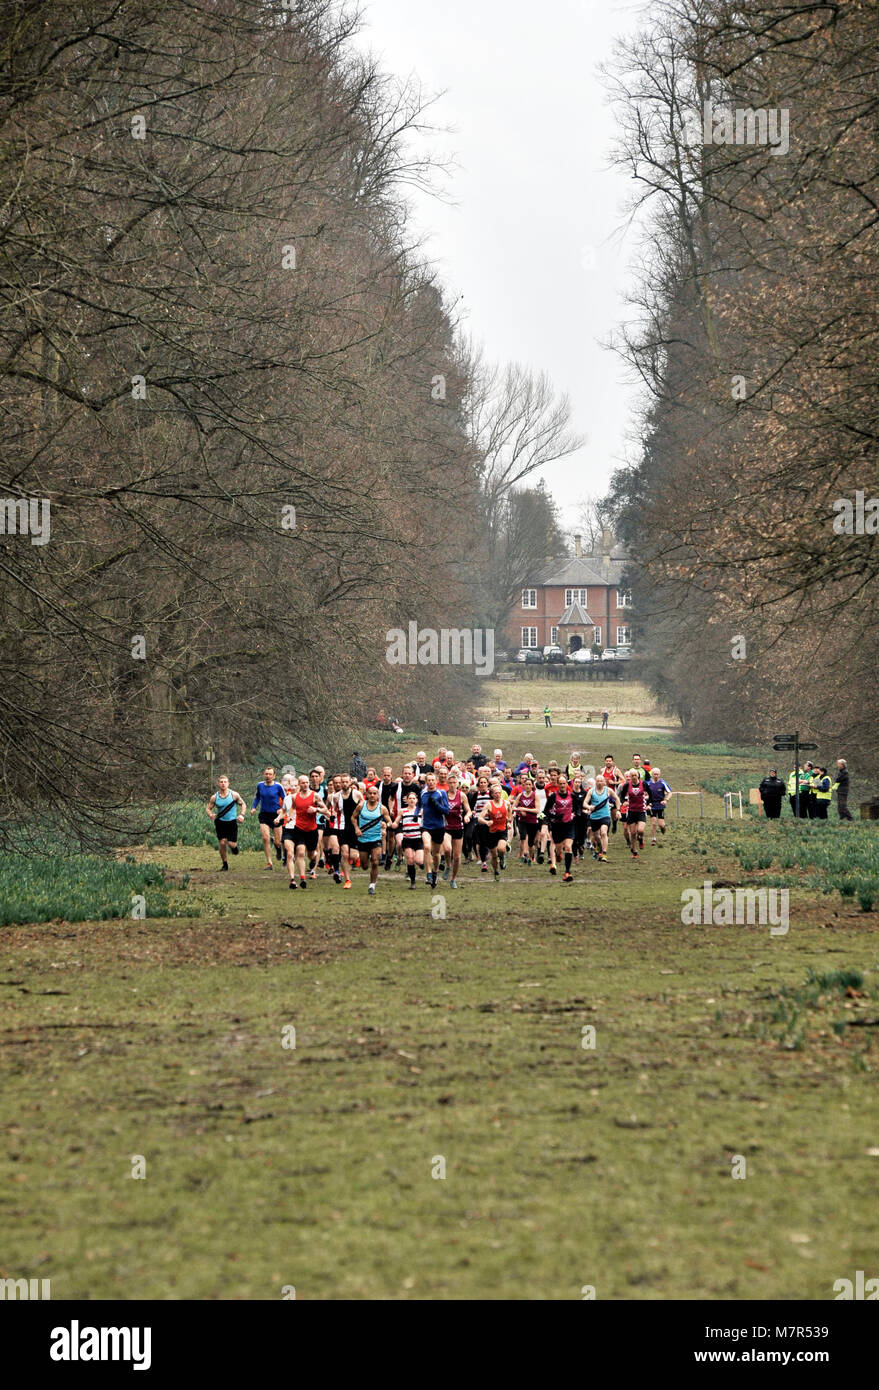 start of cross country race nowton park bury st edmunds suffolk uk - Stock Image